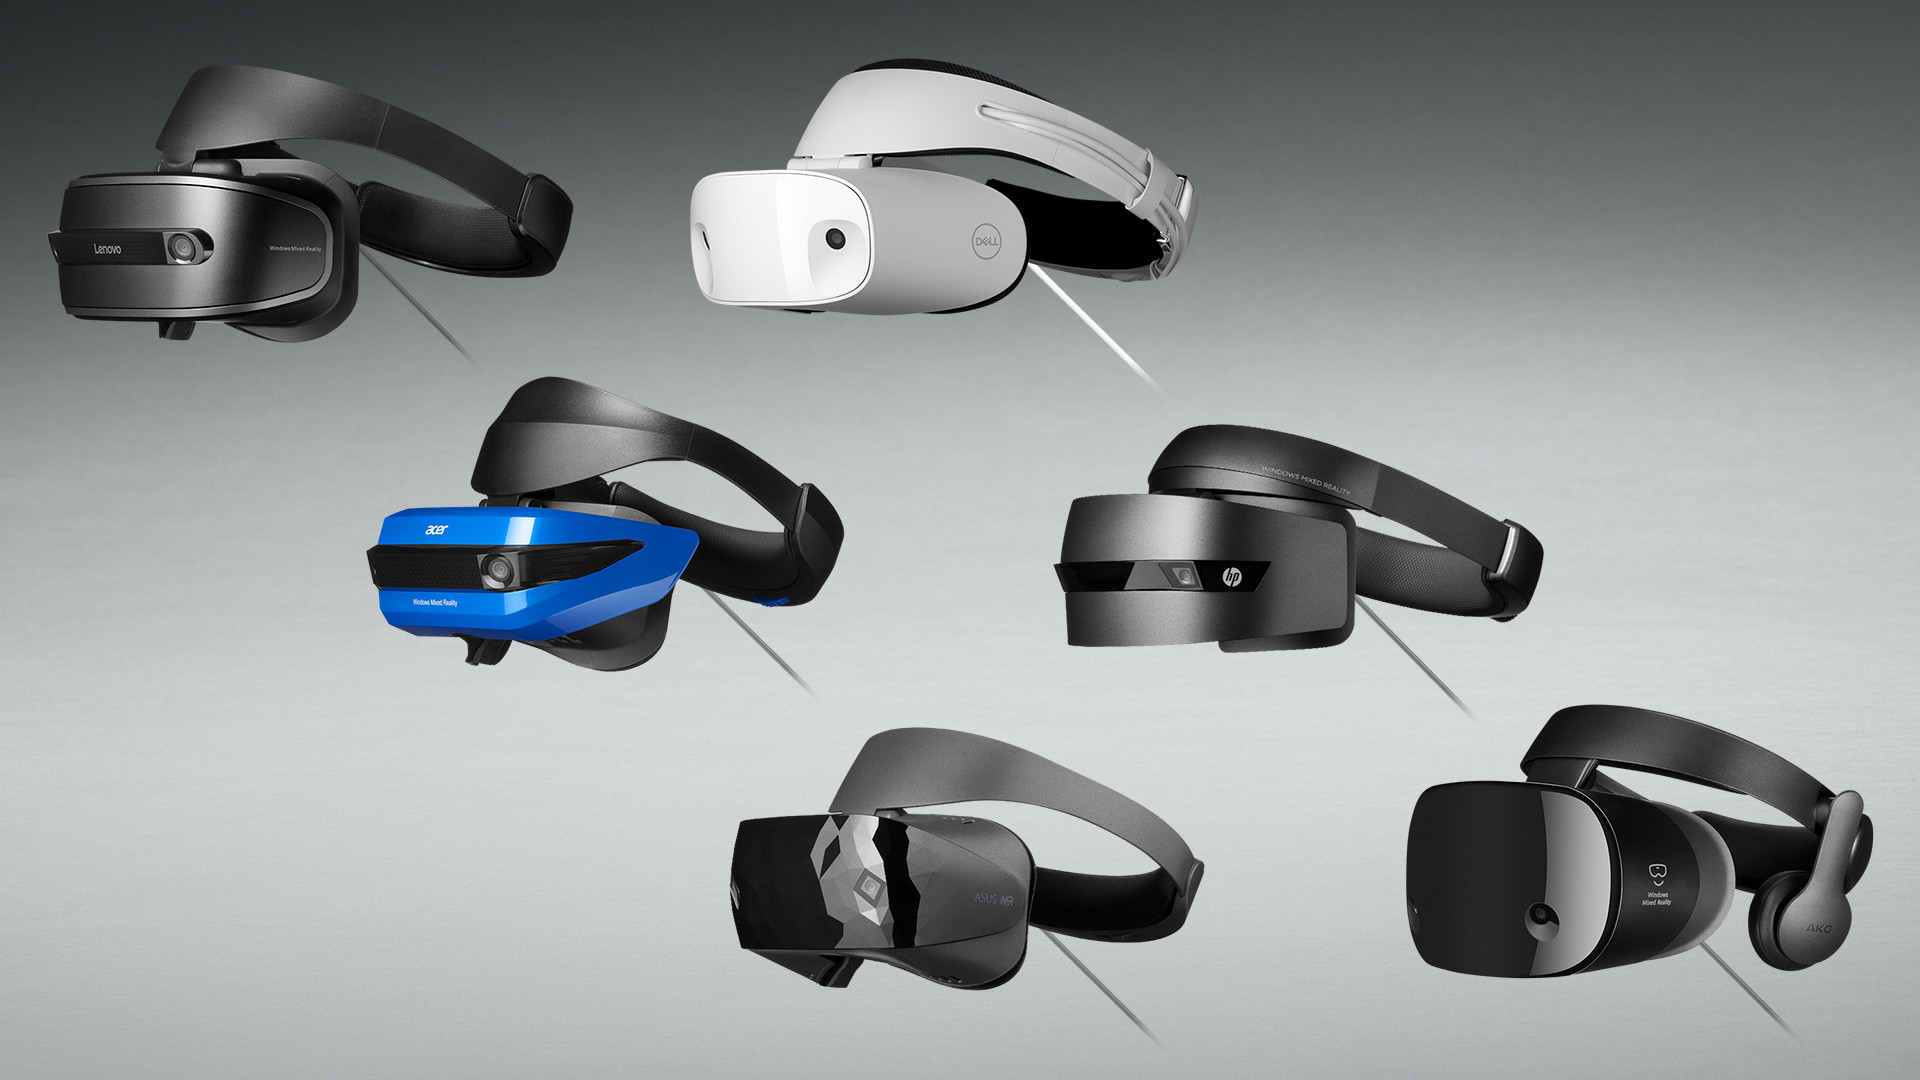 Windows Mixed Reality for SteamVR on Steam